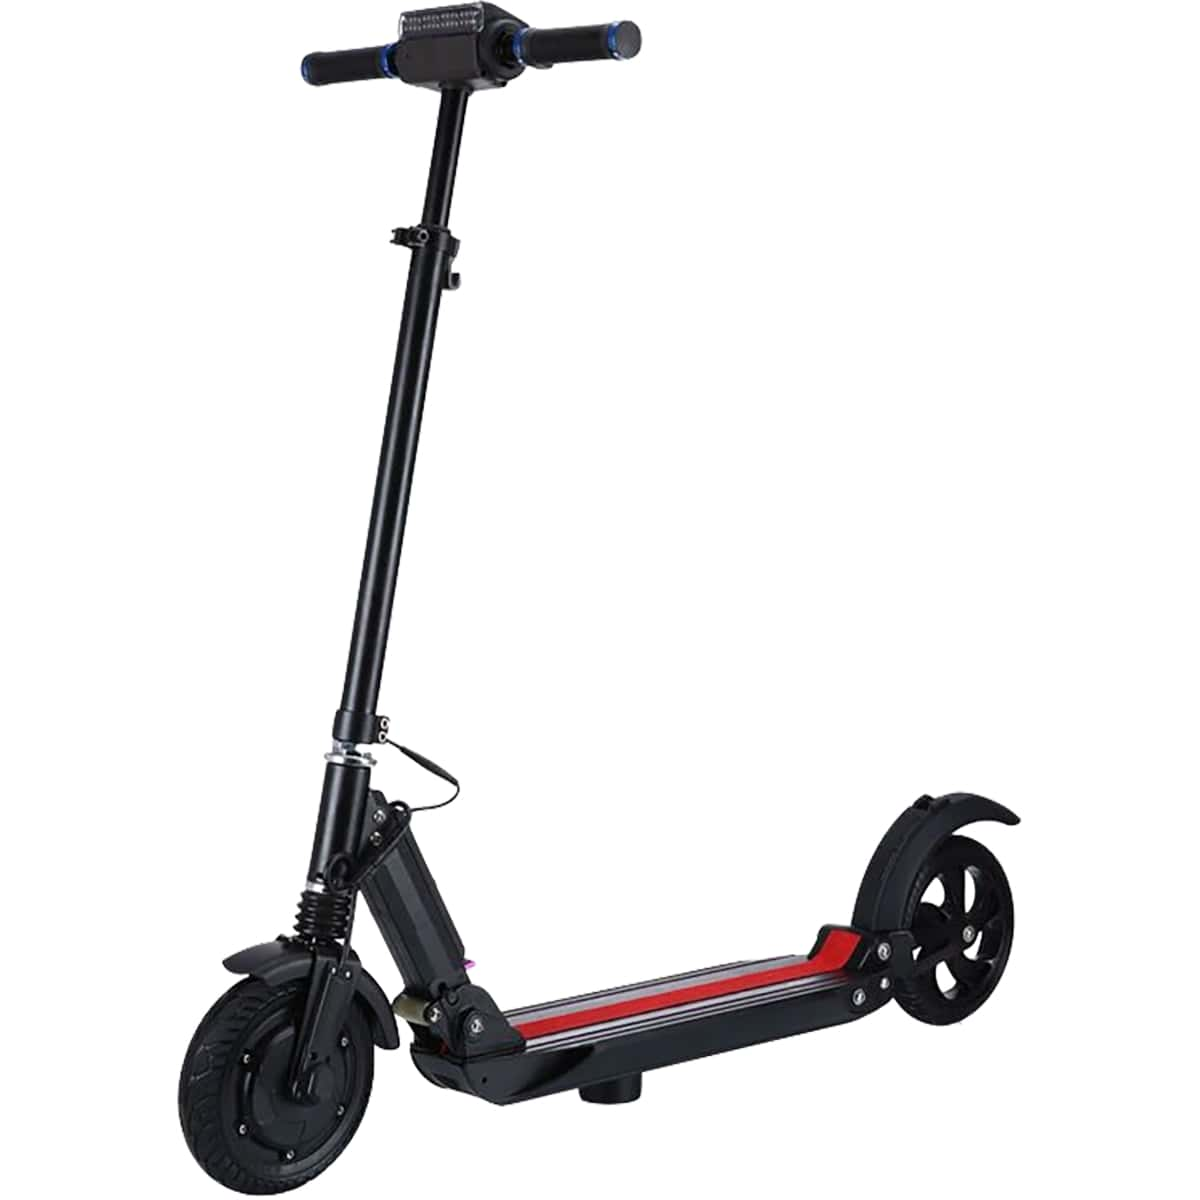 35813 - Electrical scooters Europe